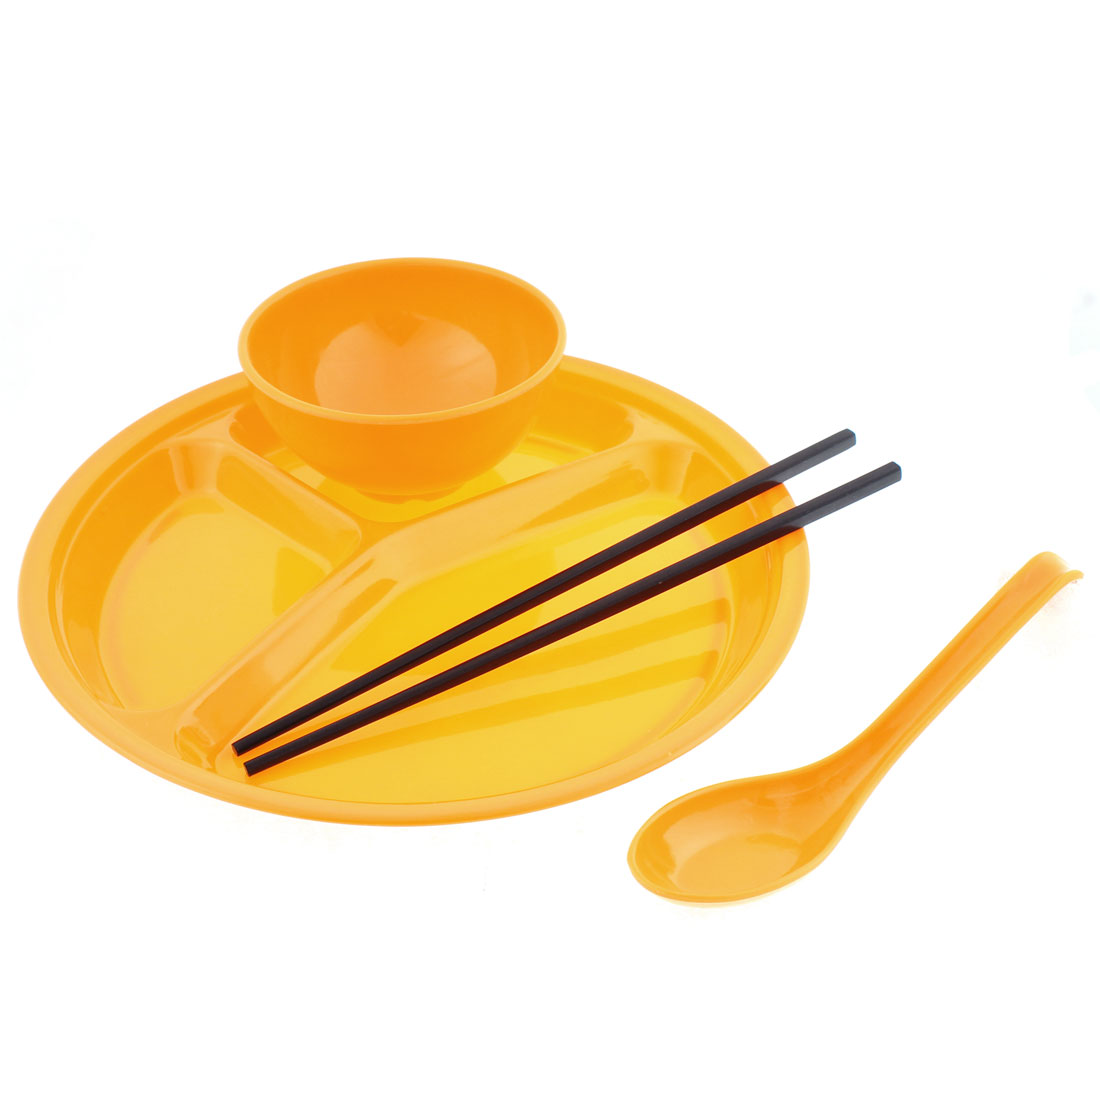 School Canteen Bowl Chopsticks Spoon 3 Sections Divided Plate Yellow 4 in 1